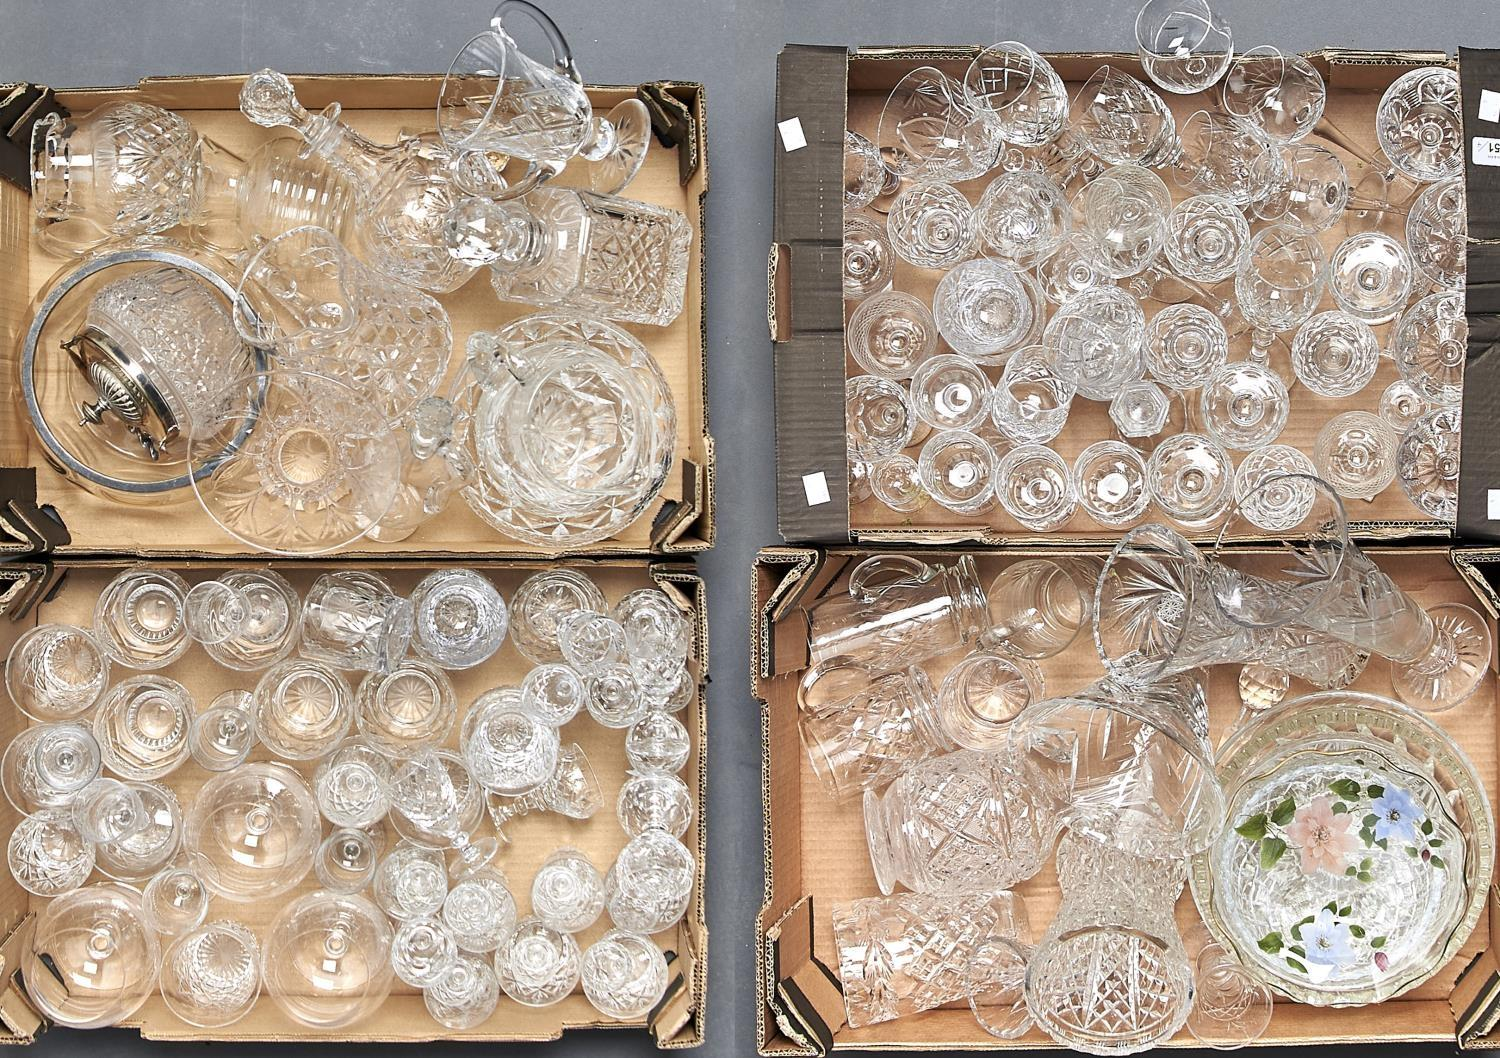 MISCELLANEOUS CUT AND OTHER GLASSWARE, TO INCLUDE DECANTERS AND STOPPERS, VASES, BOWLS, JUGS,